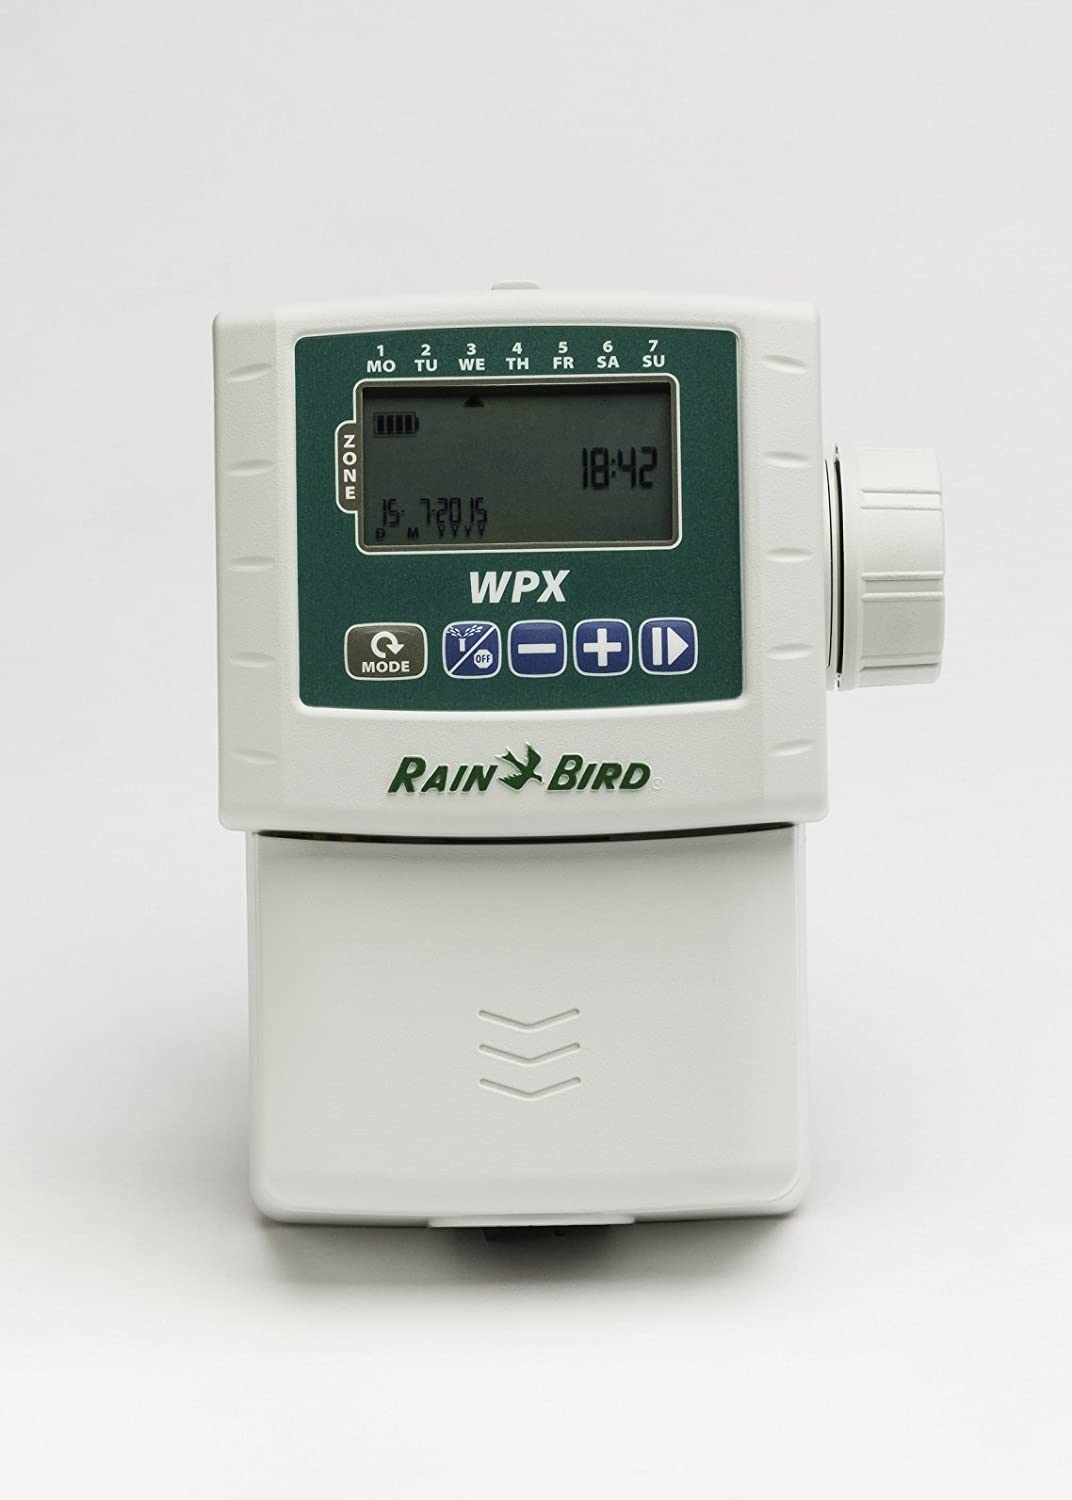 Rain Bird WPX 9/V Battery Operated Choice of 1,2,4,6/Zones Irrigation Control Device